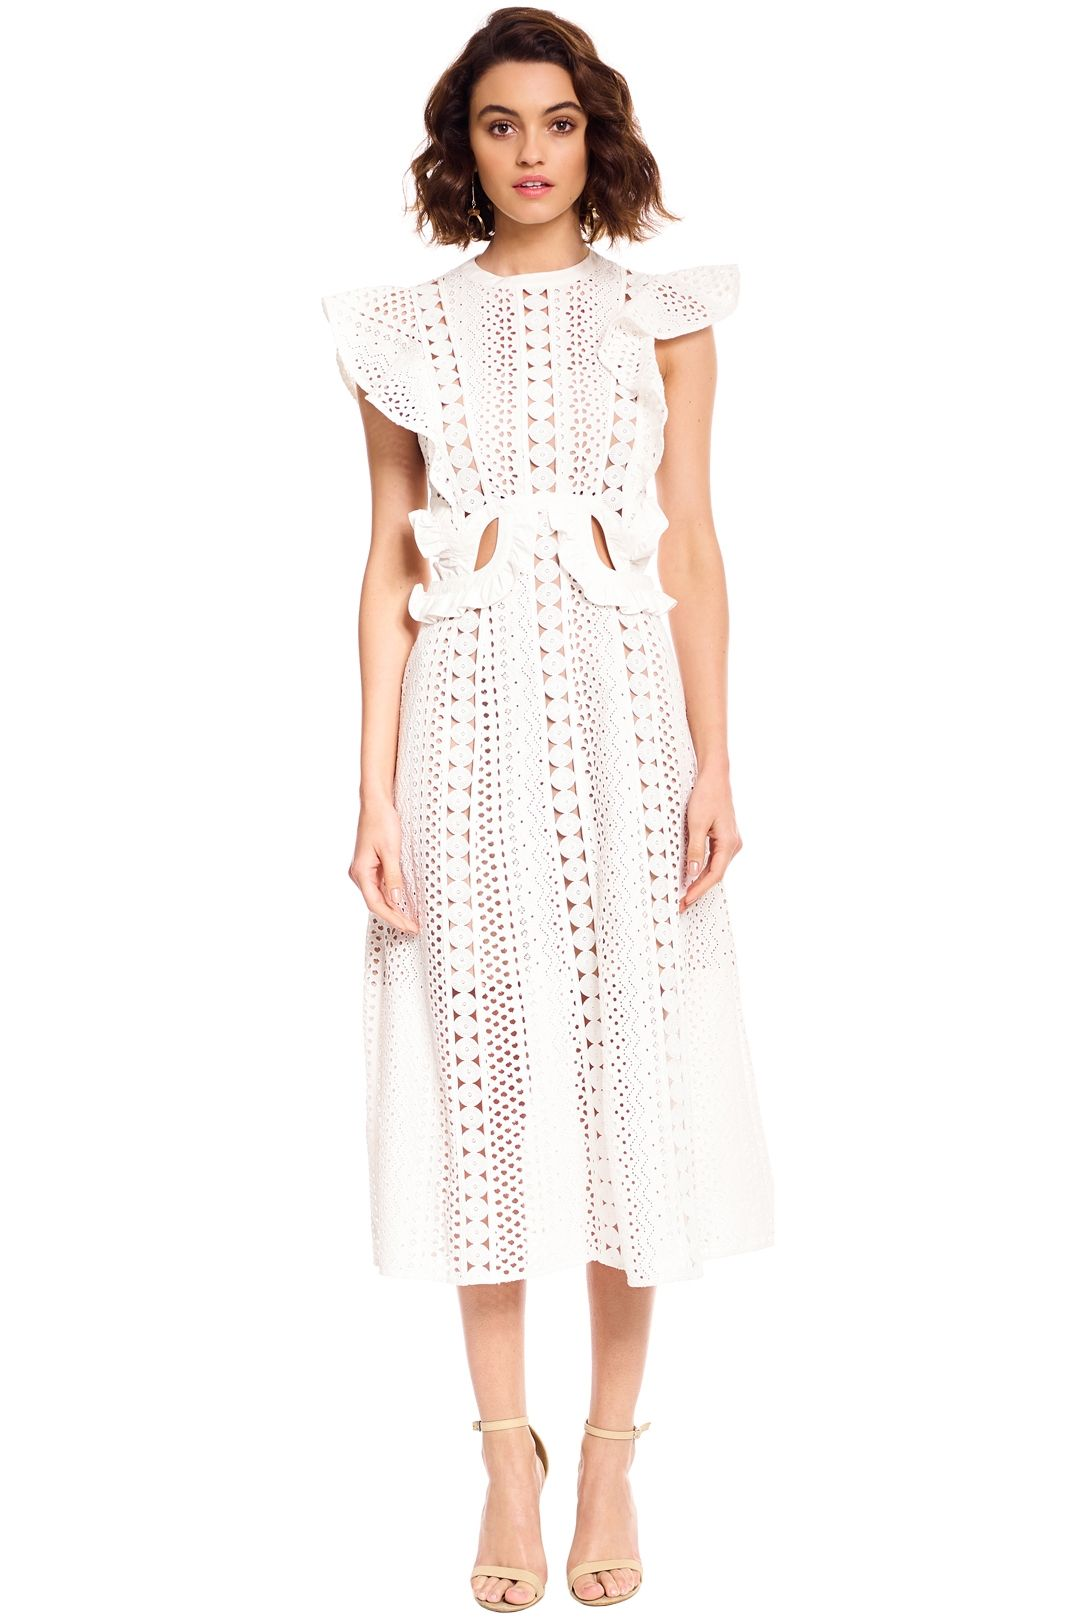 Self Portrait - Embroidered Cut-Out Midi Dress - White - Front